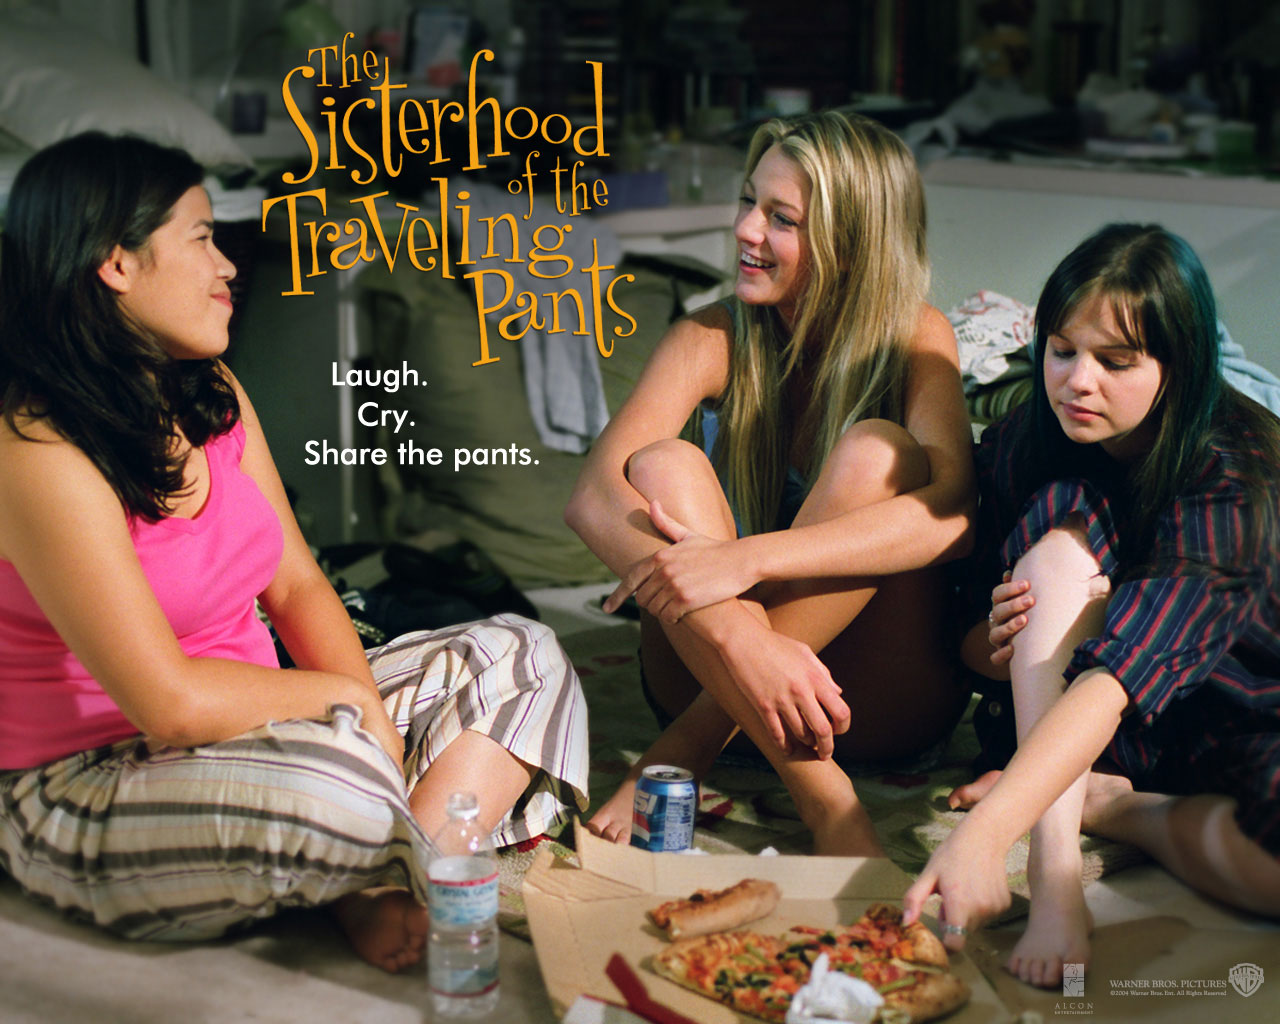 sisterhood of the traveling pants Summary and reviews of the sisterhood of the traveling pants by ann brashares, plus links to a book excerpt from the sisterhood of the traveling pants and author biography of ann brashares.